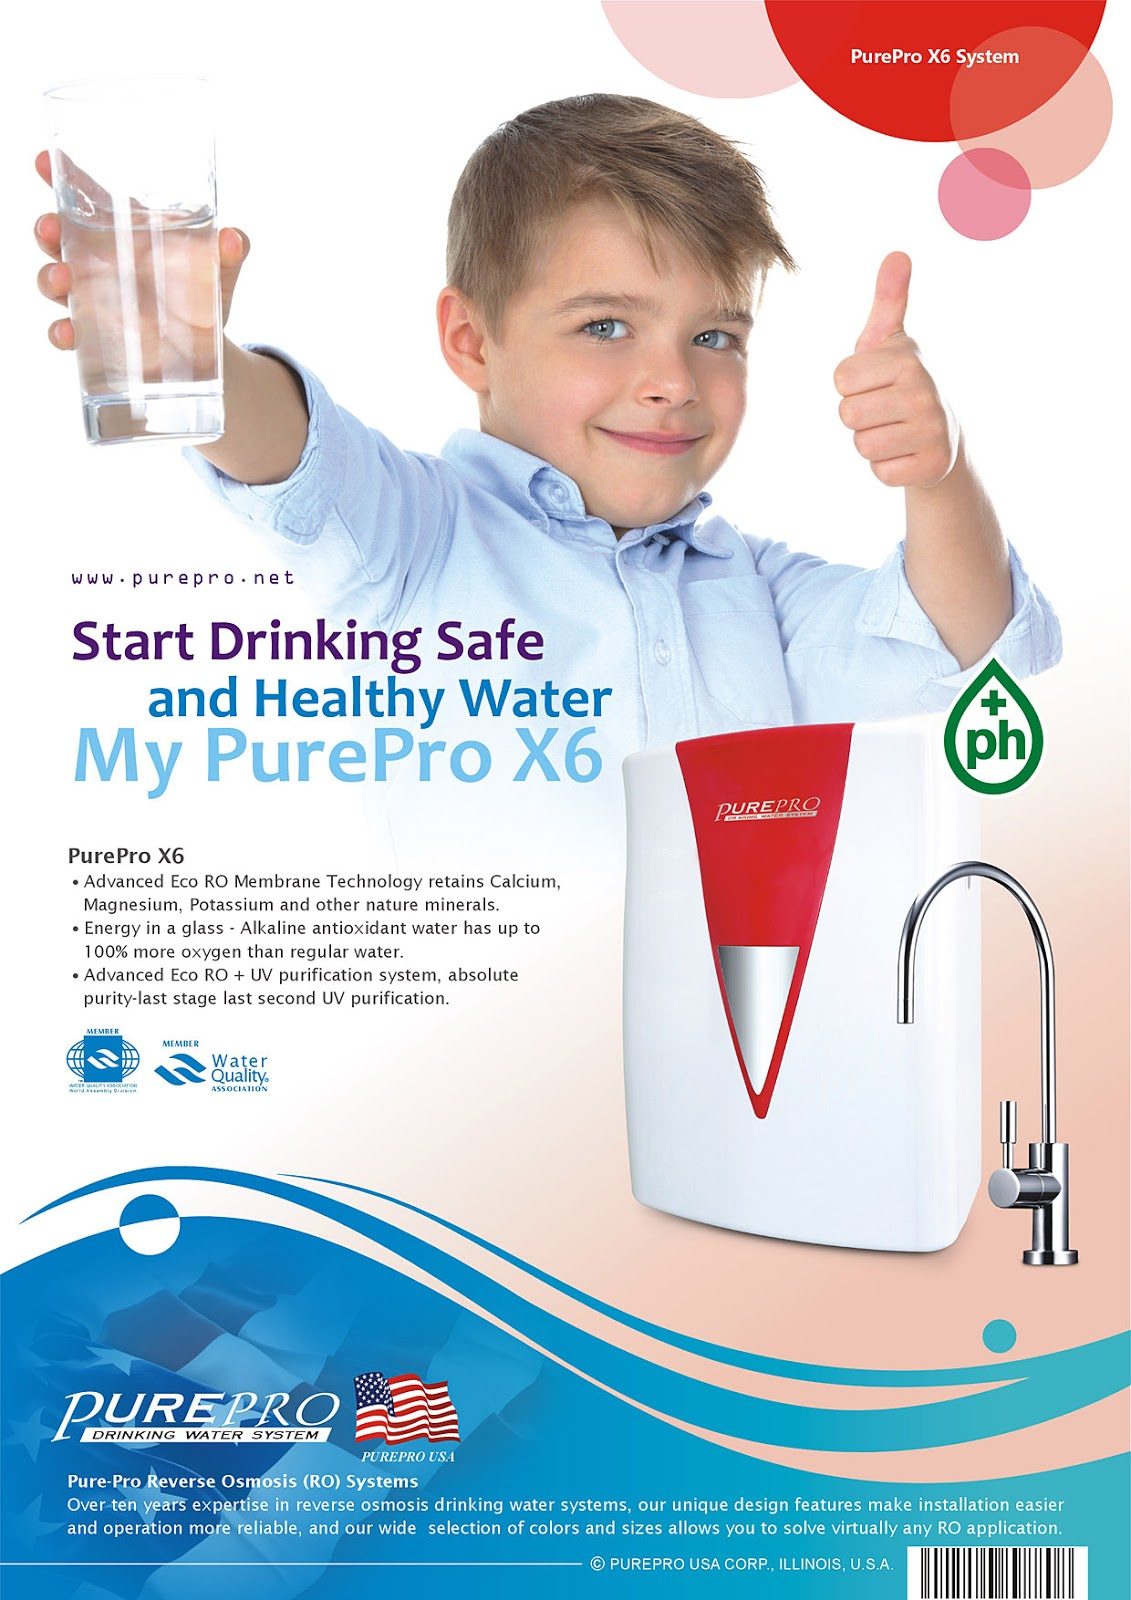 PurePro® X6 : My Pure Water, My PurePro X6, Alkaline Ultraviolet Reverse Osmosis System